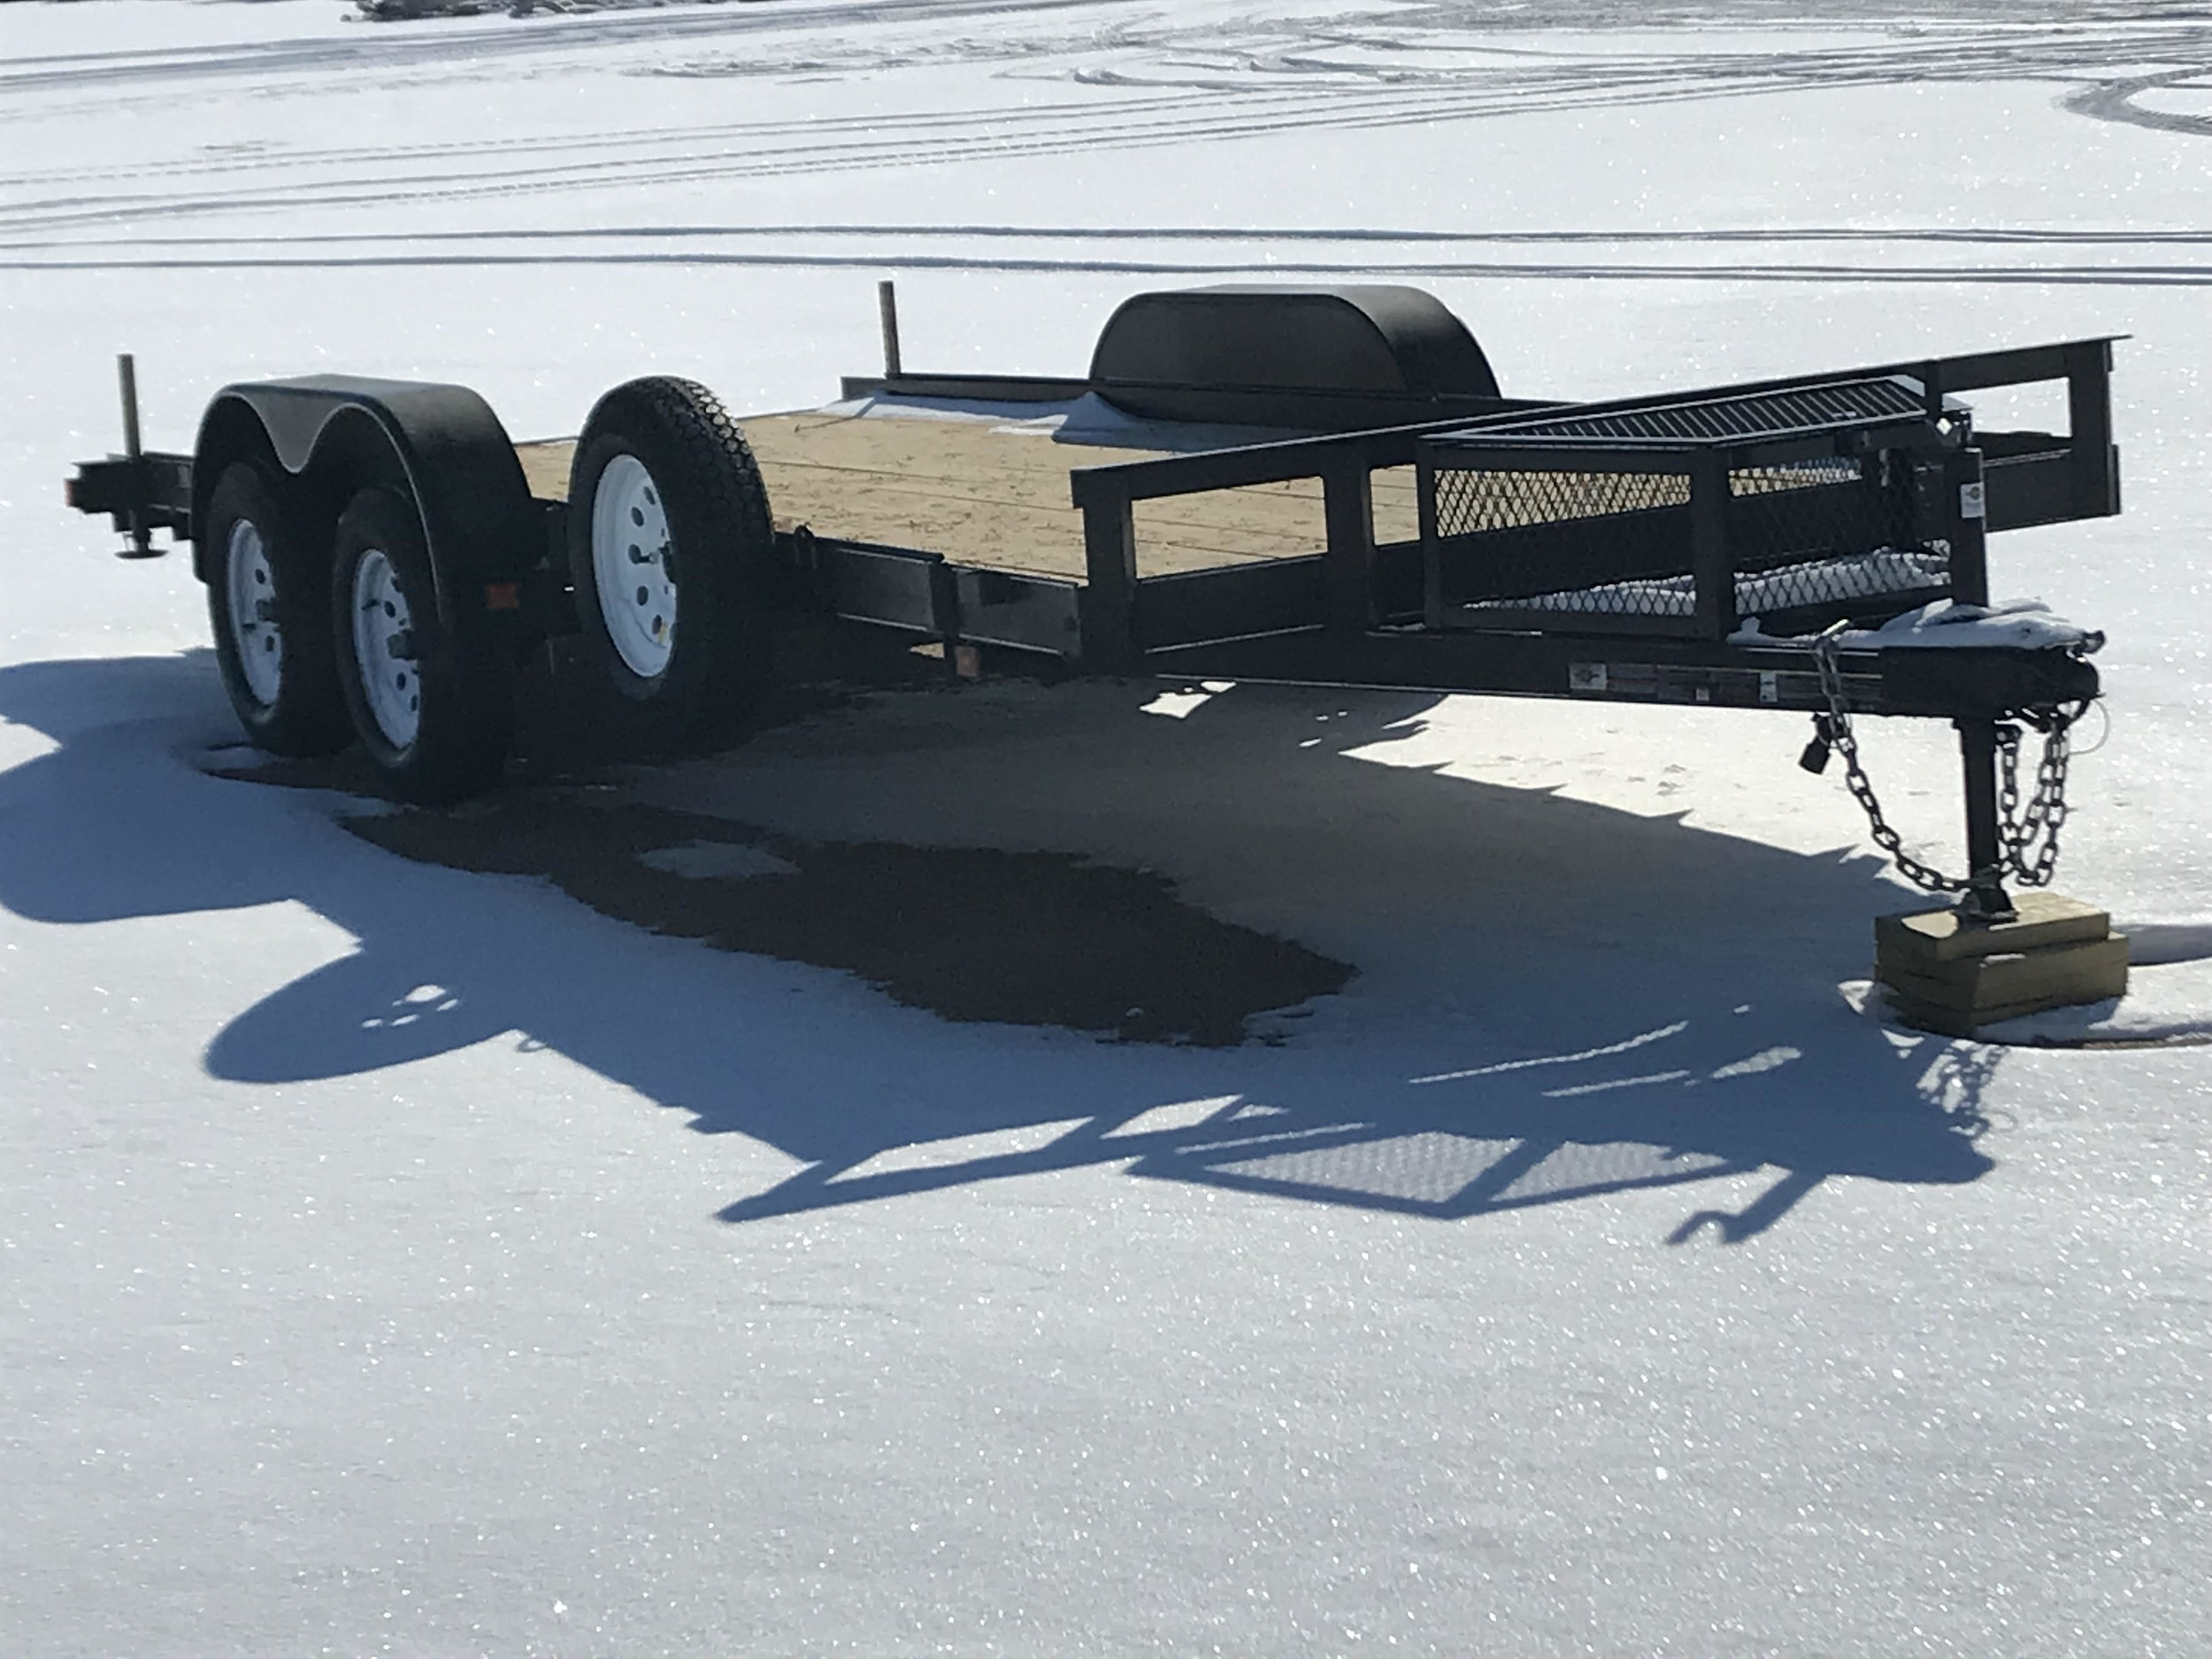 Utility Trailers - Daily Rate 8 Hr. - $45*Rental rate does not include required damage deposit.